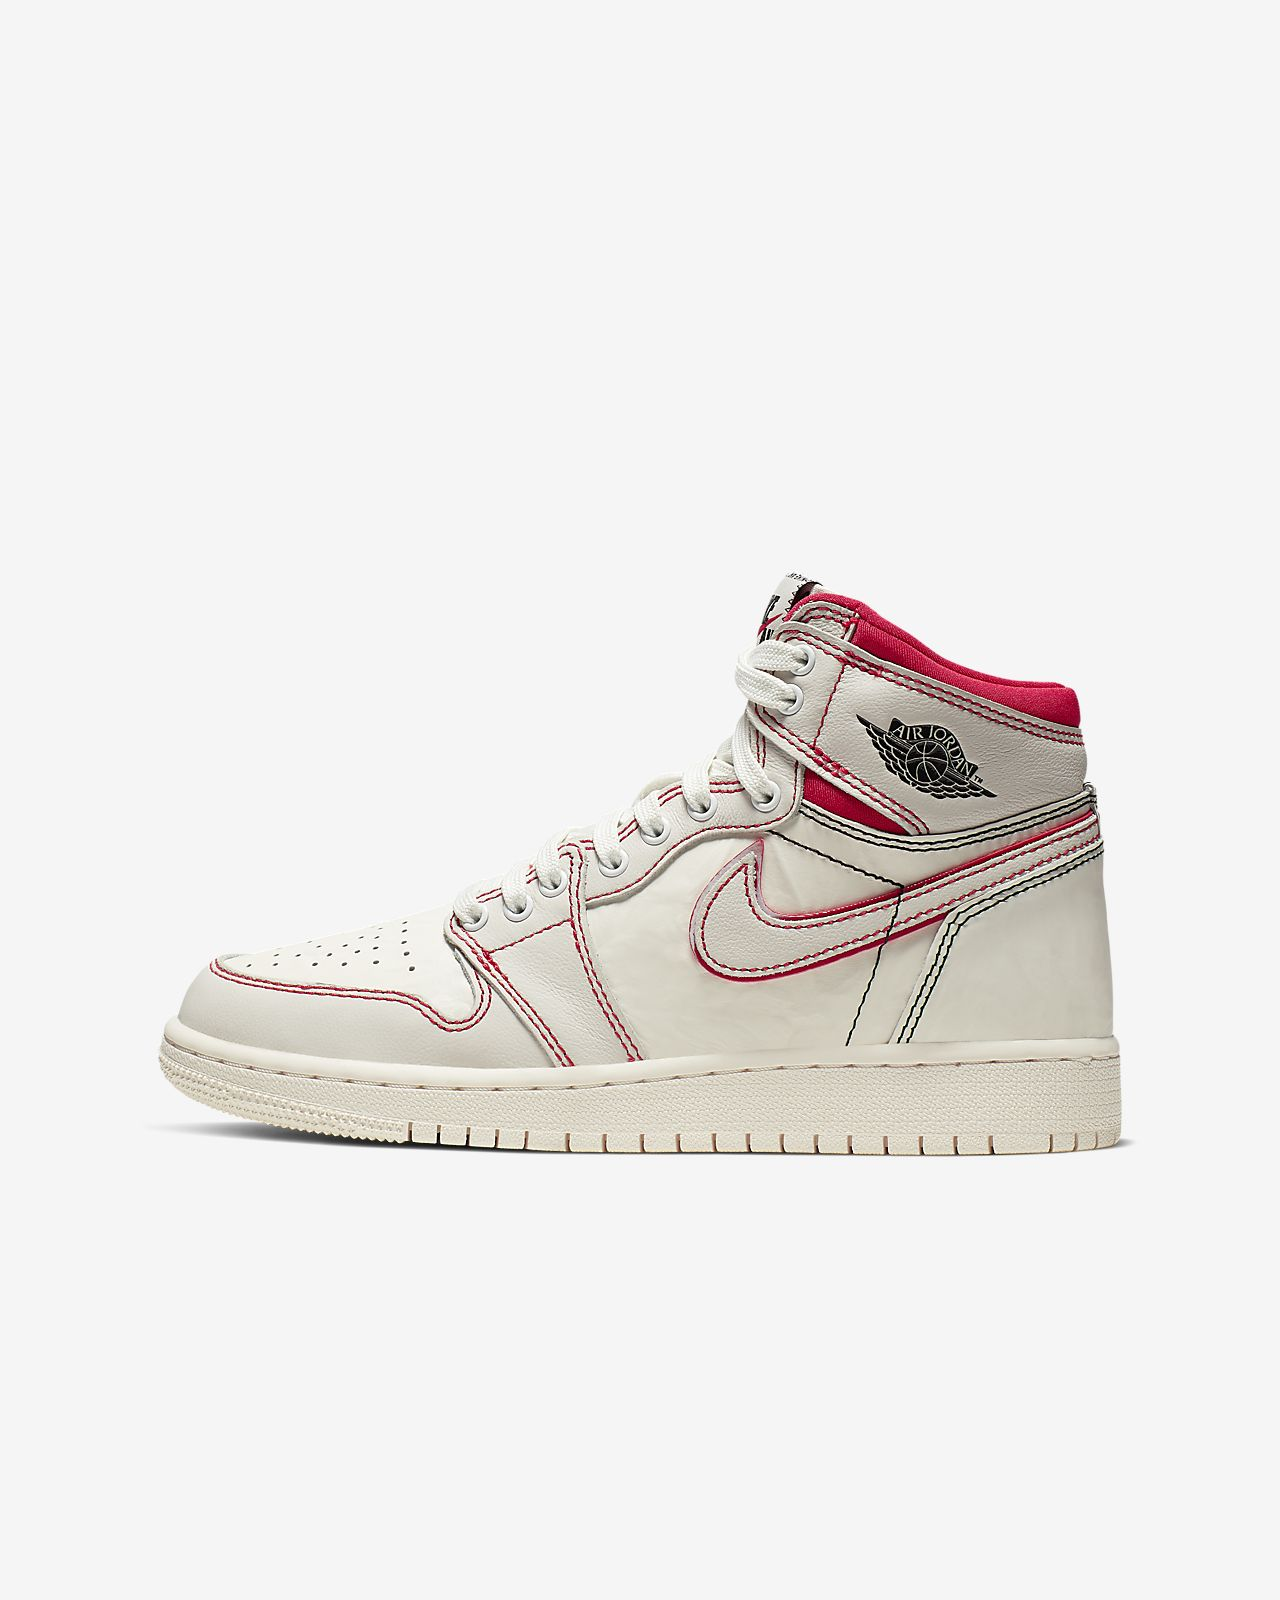 65b6331e43 Air Jordan 1 Retro High OG Boys' Shoe. Nike.com